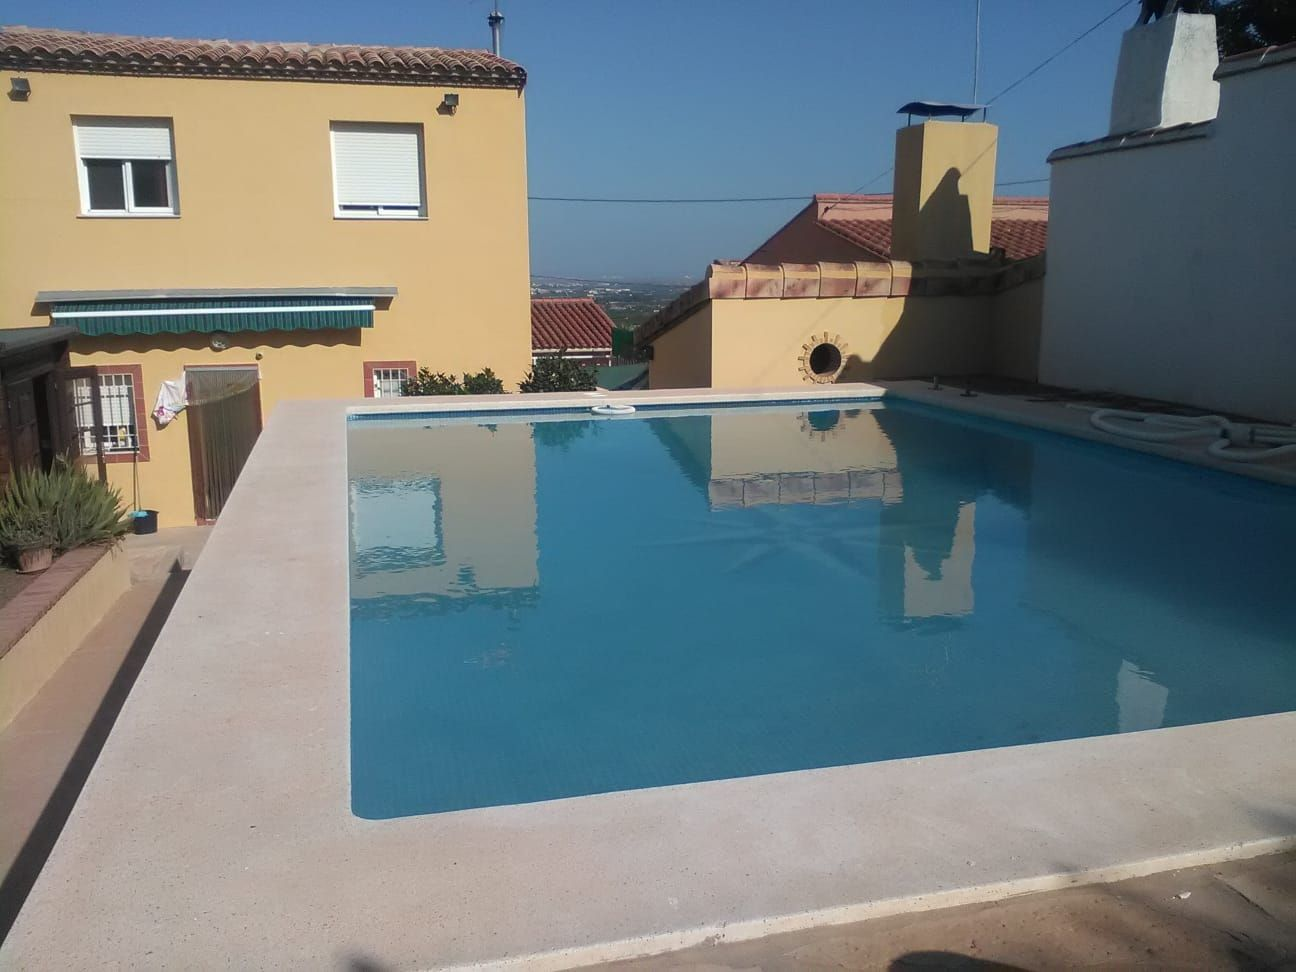 Miete Chalet  Penelope-zona. Chalet con piscina